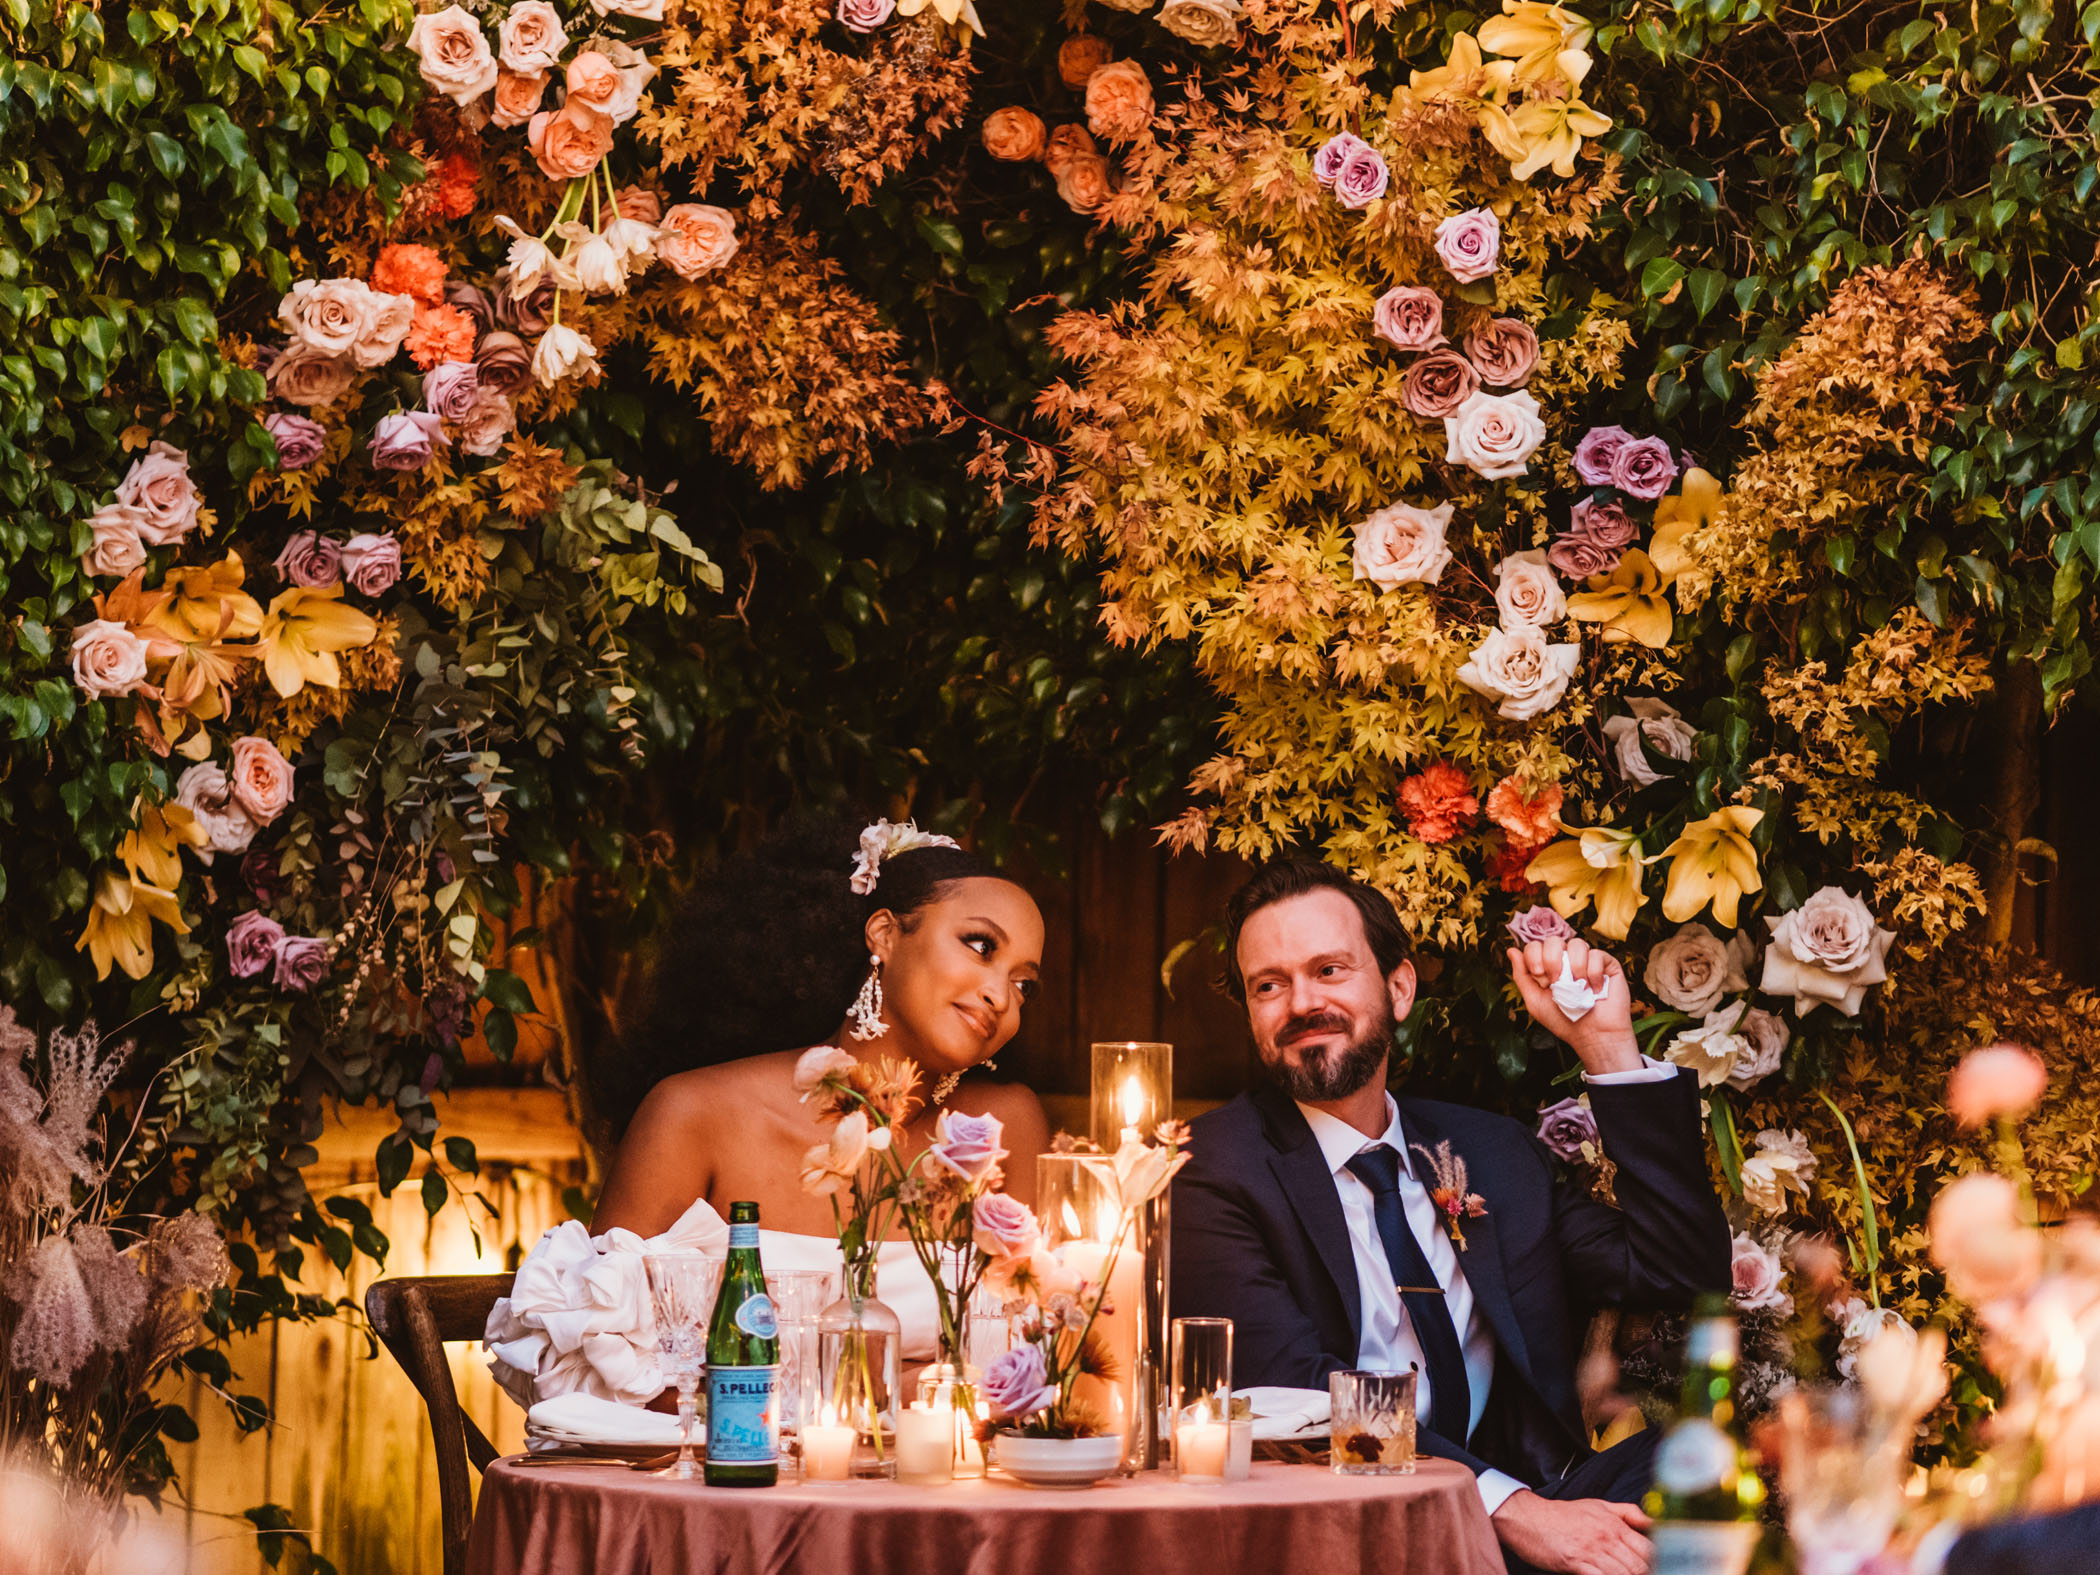 Groom stares lovingly at his bride at their wedding dinner